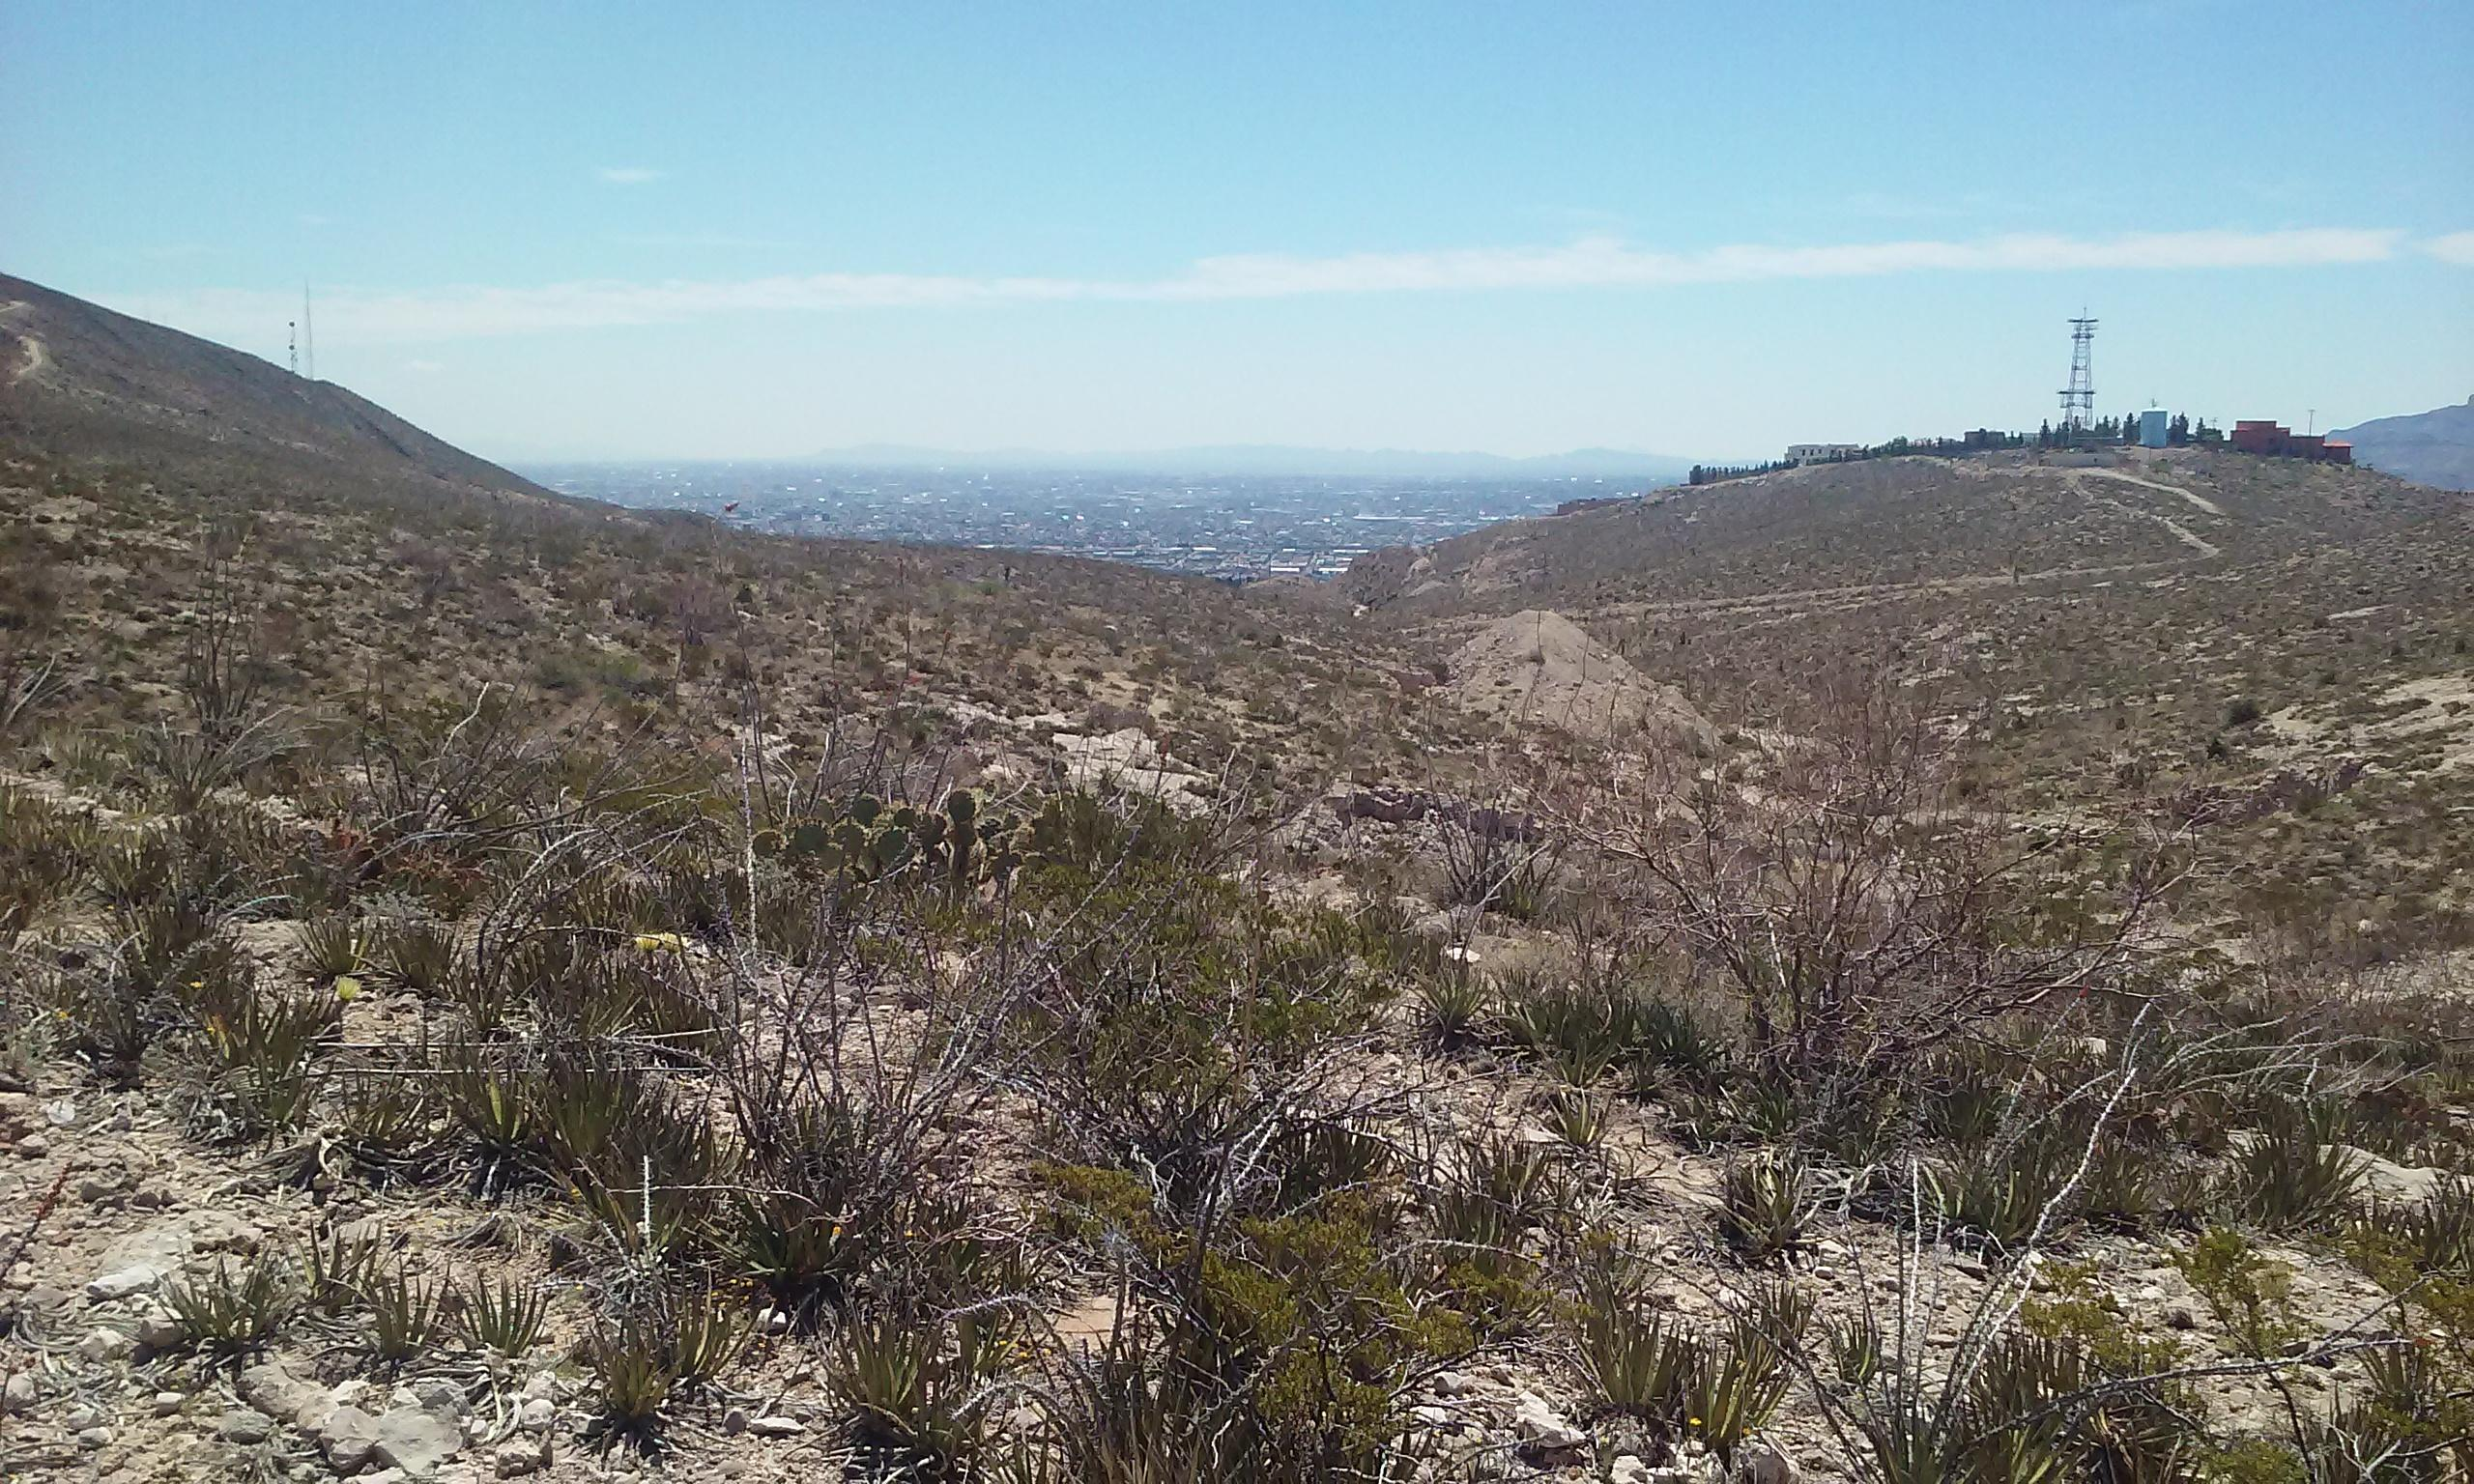 A view from the top looking at Juarez and El Paso. Worth the climb. Palisades Hiking Trail